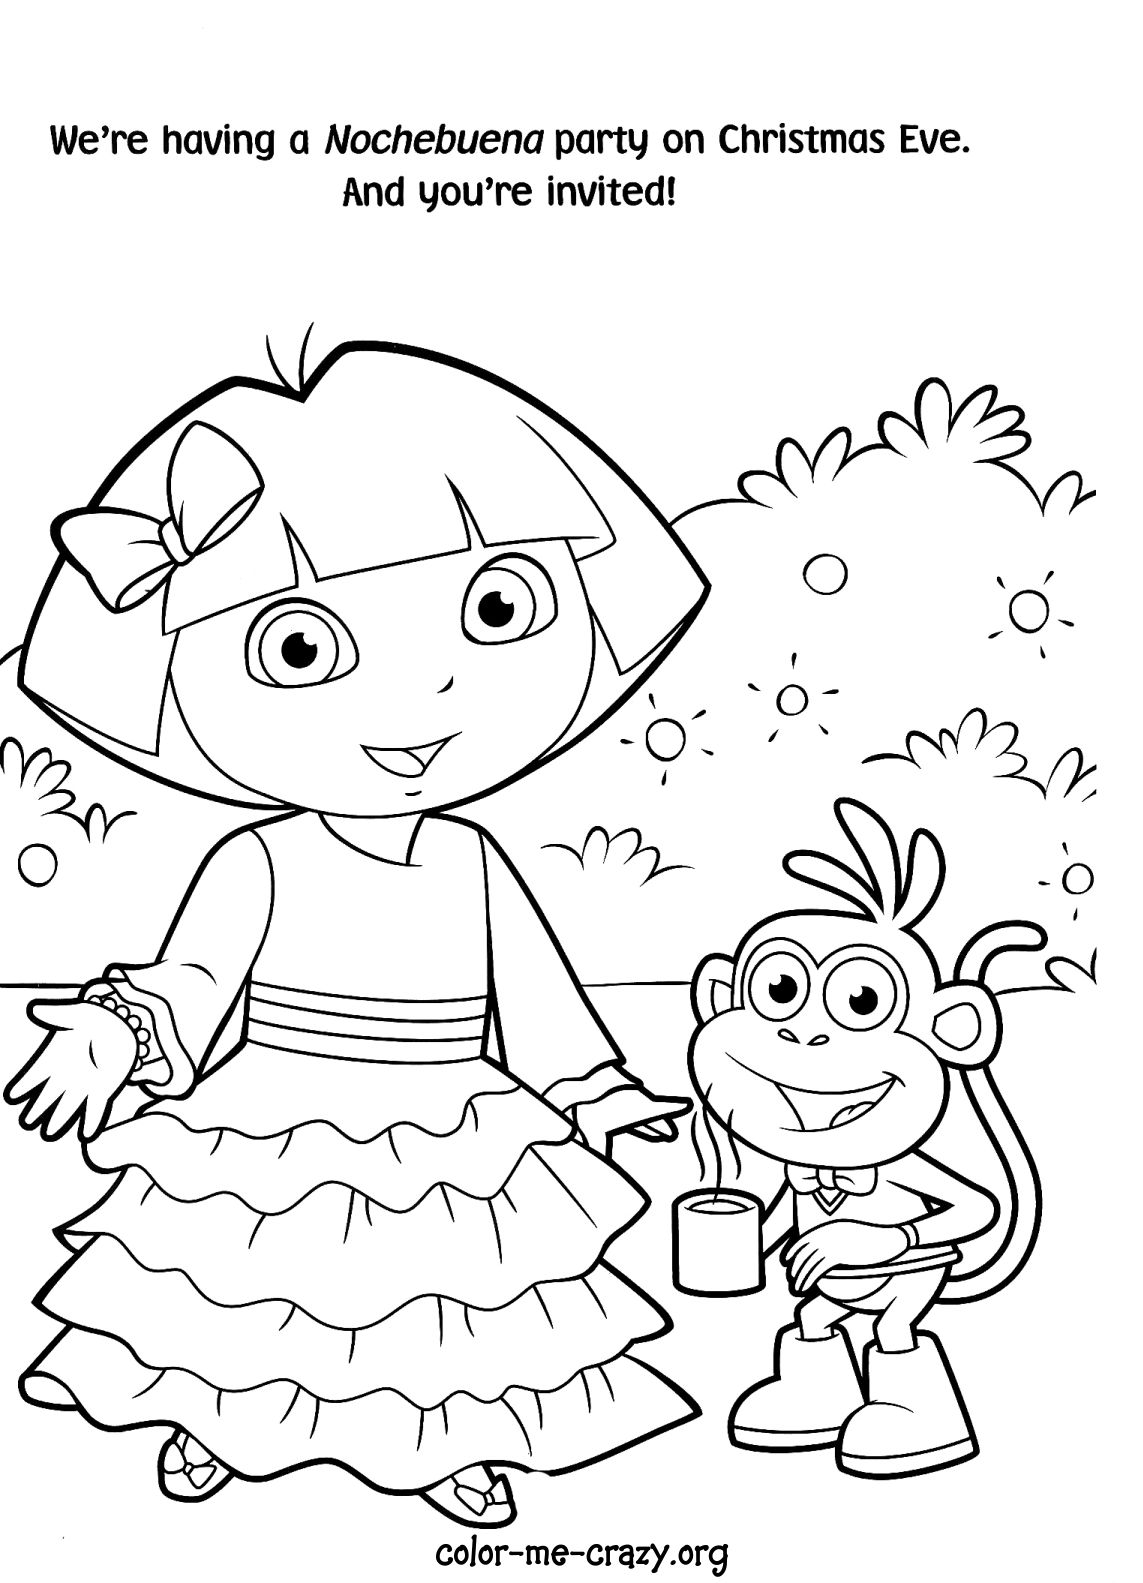 Princess dora the explorer coloring pages only coloring for Dora the explorer coloring pages online free